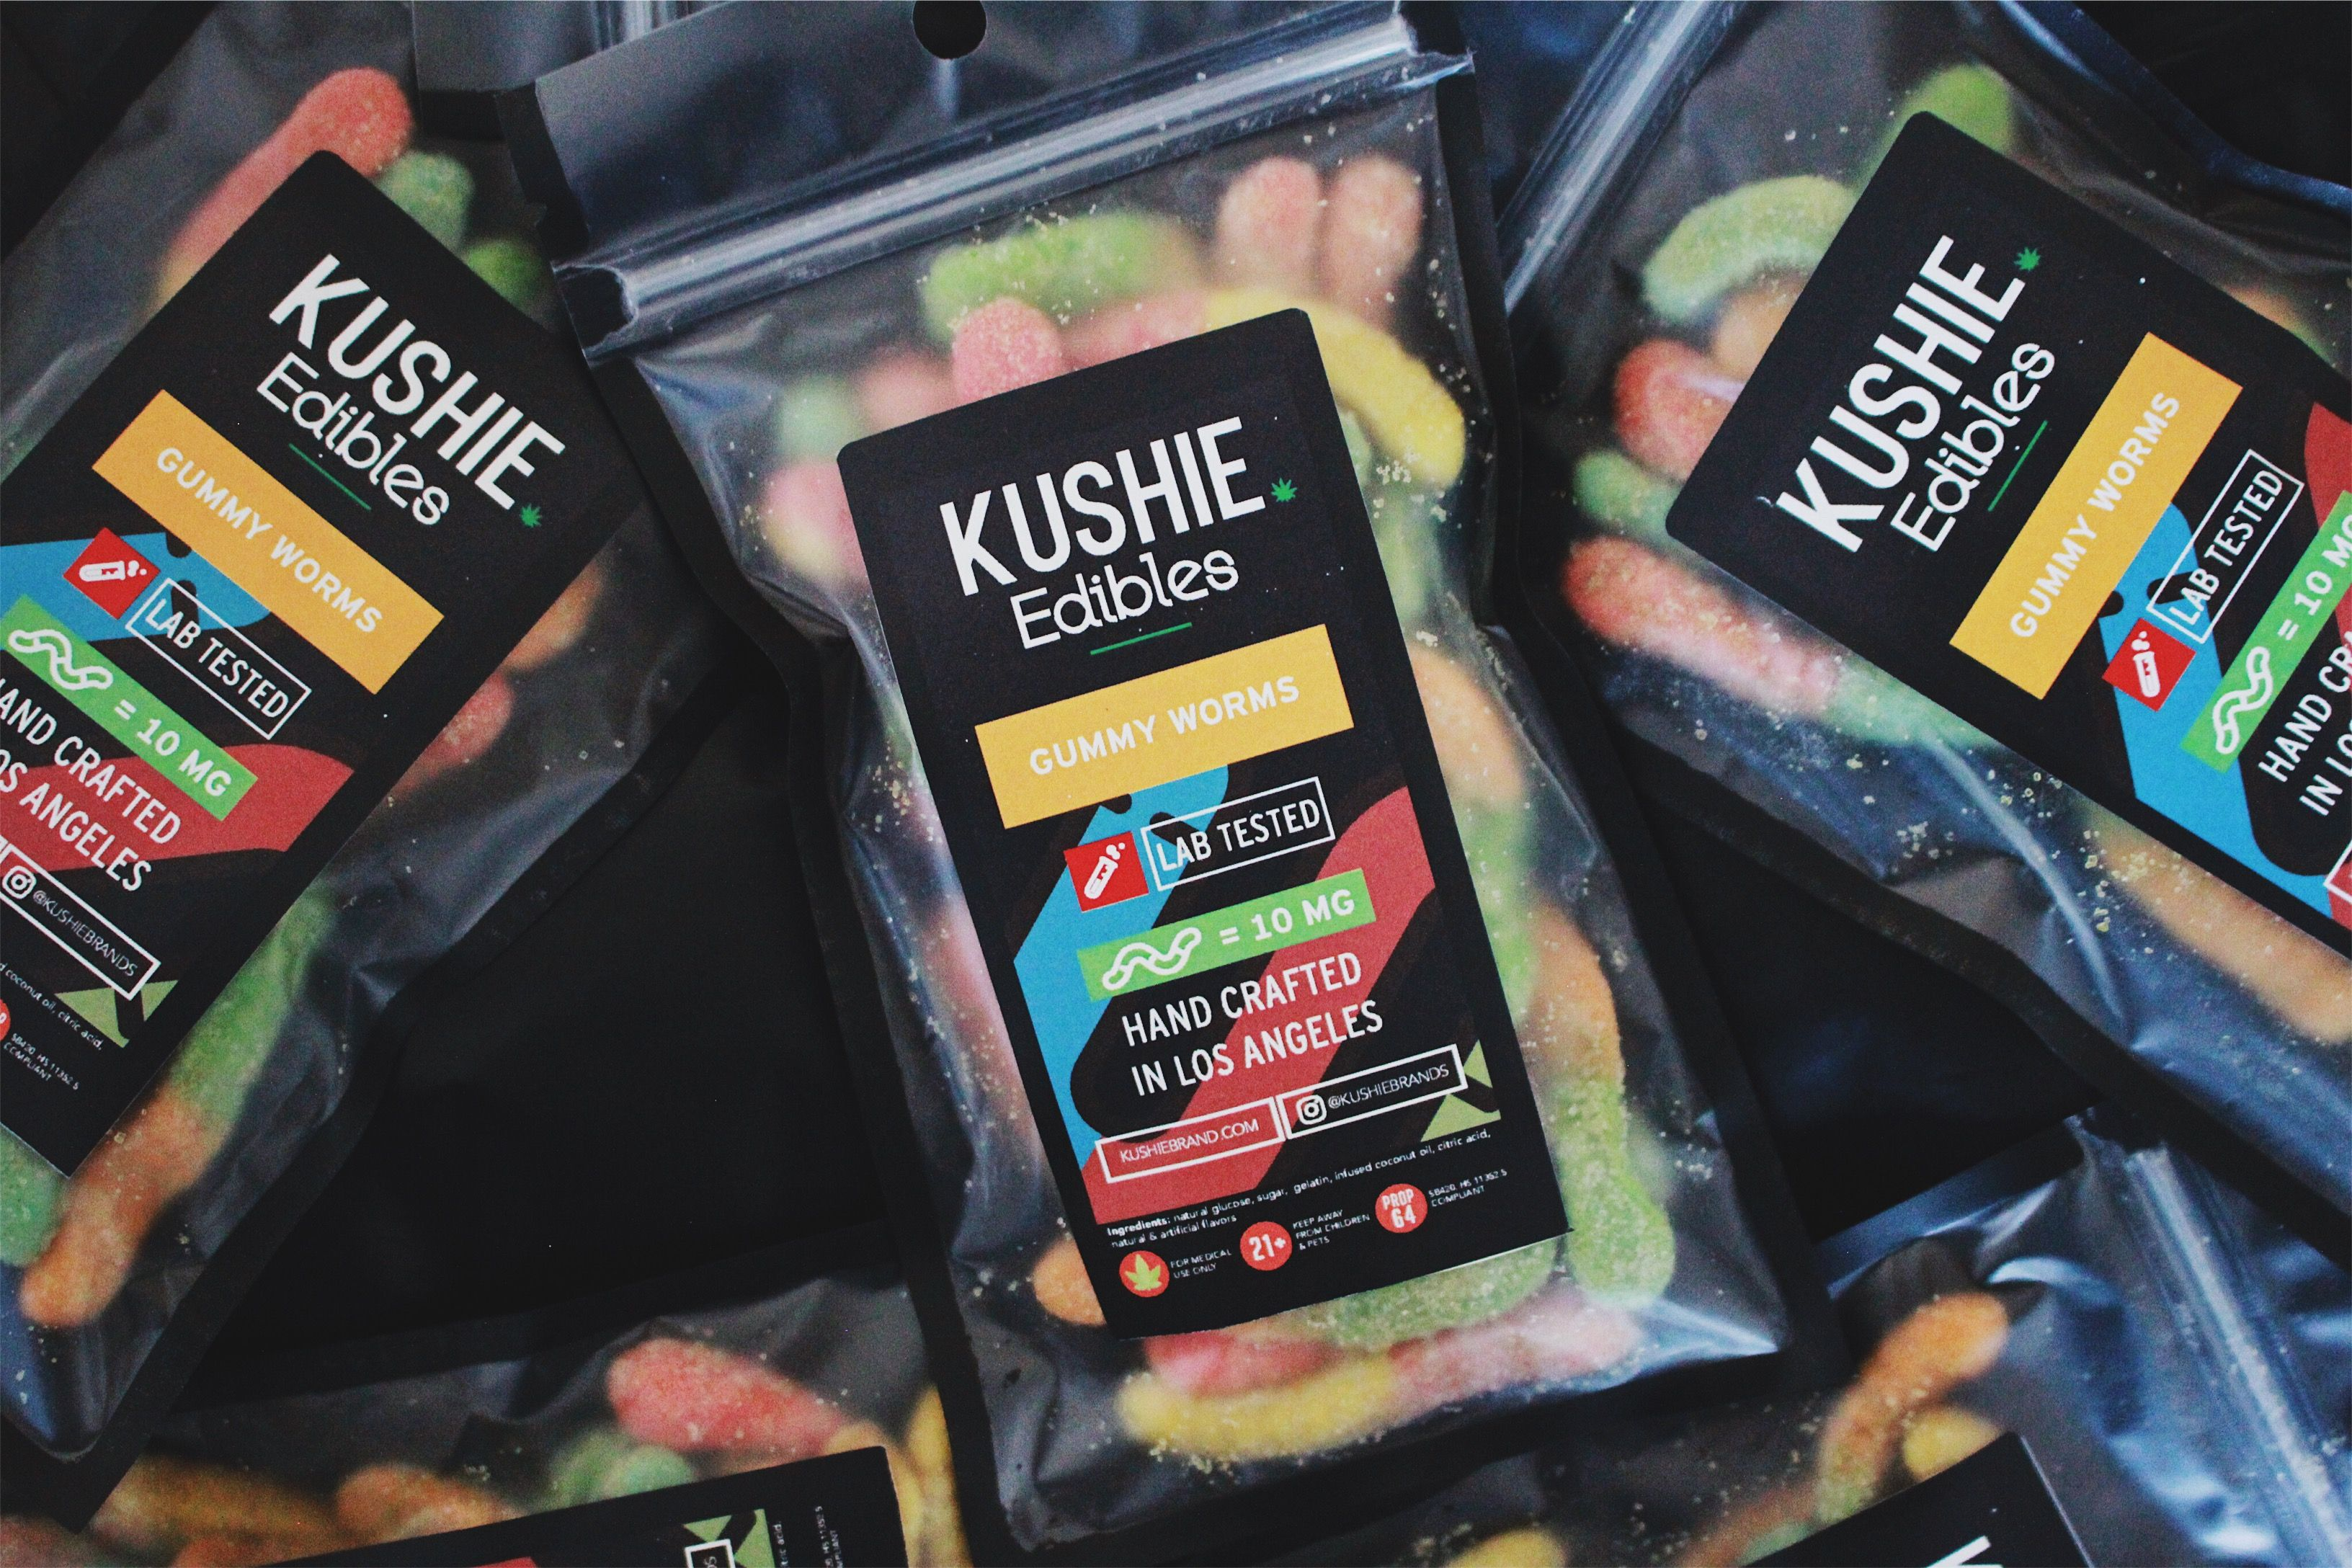 320MG Kushie Brand Gummy Worms